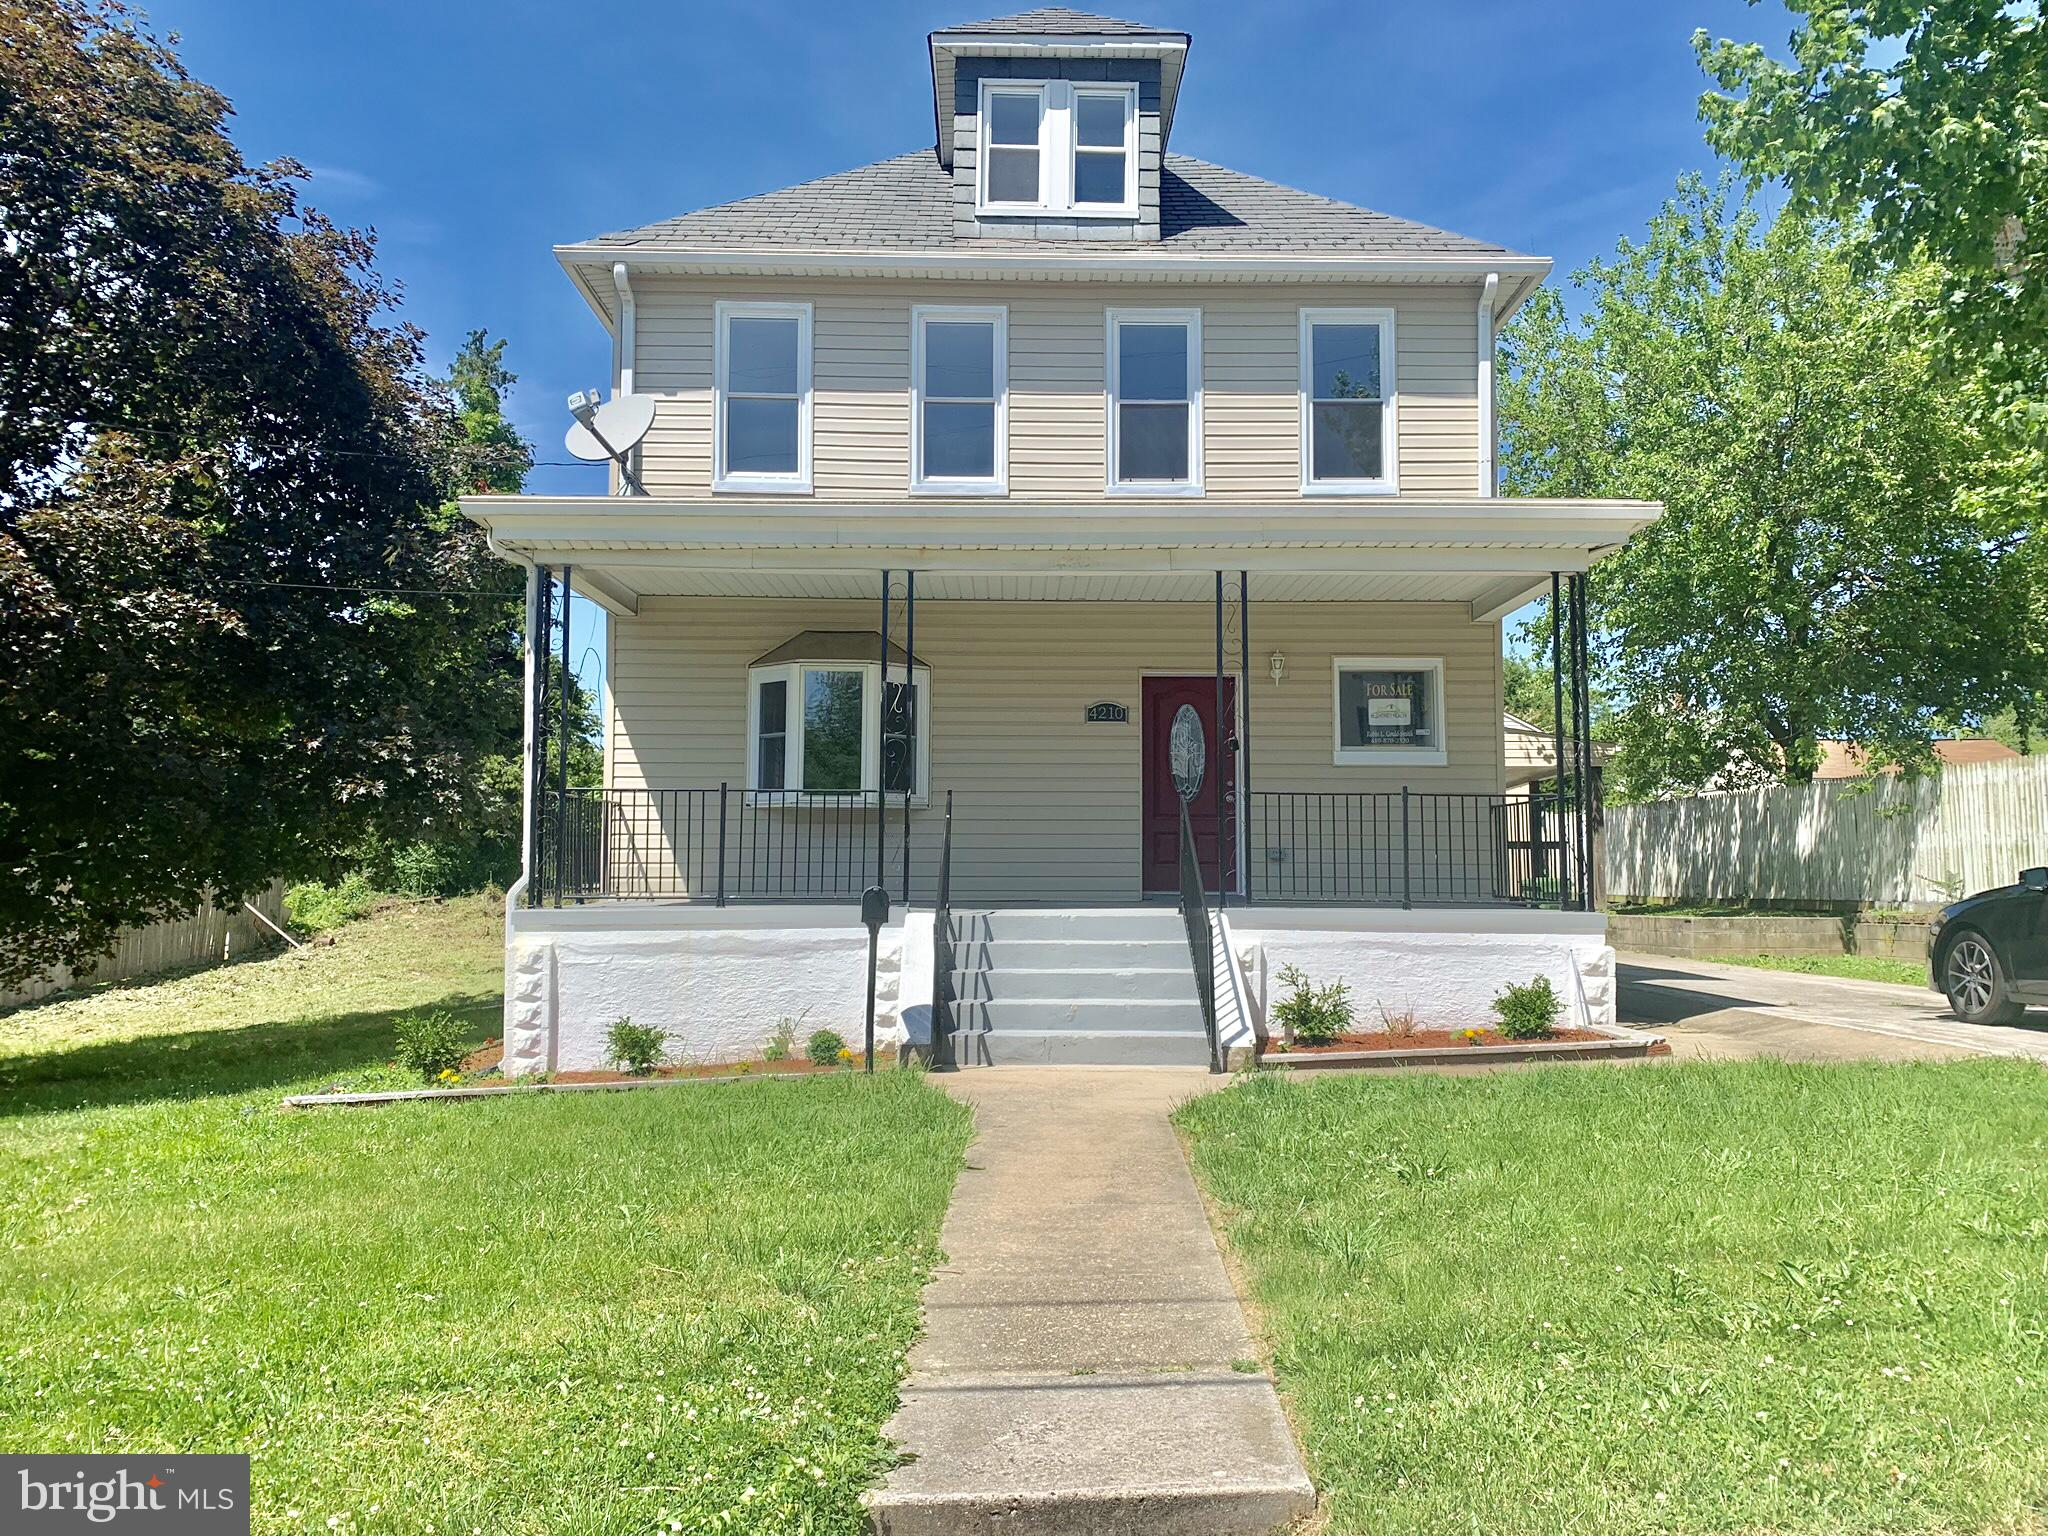 4210 BAYONNE AVENUE, BALTIMORE, MD 21206